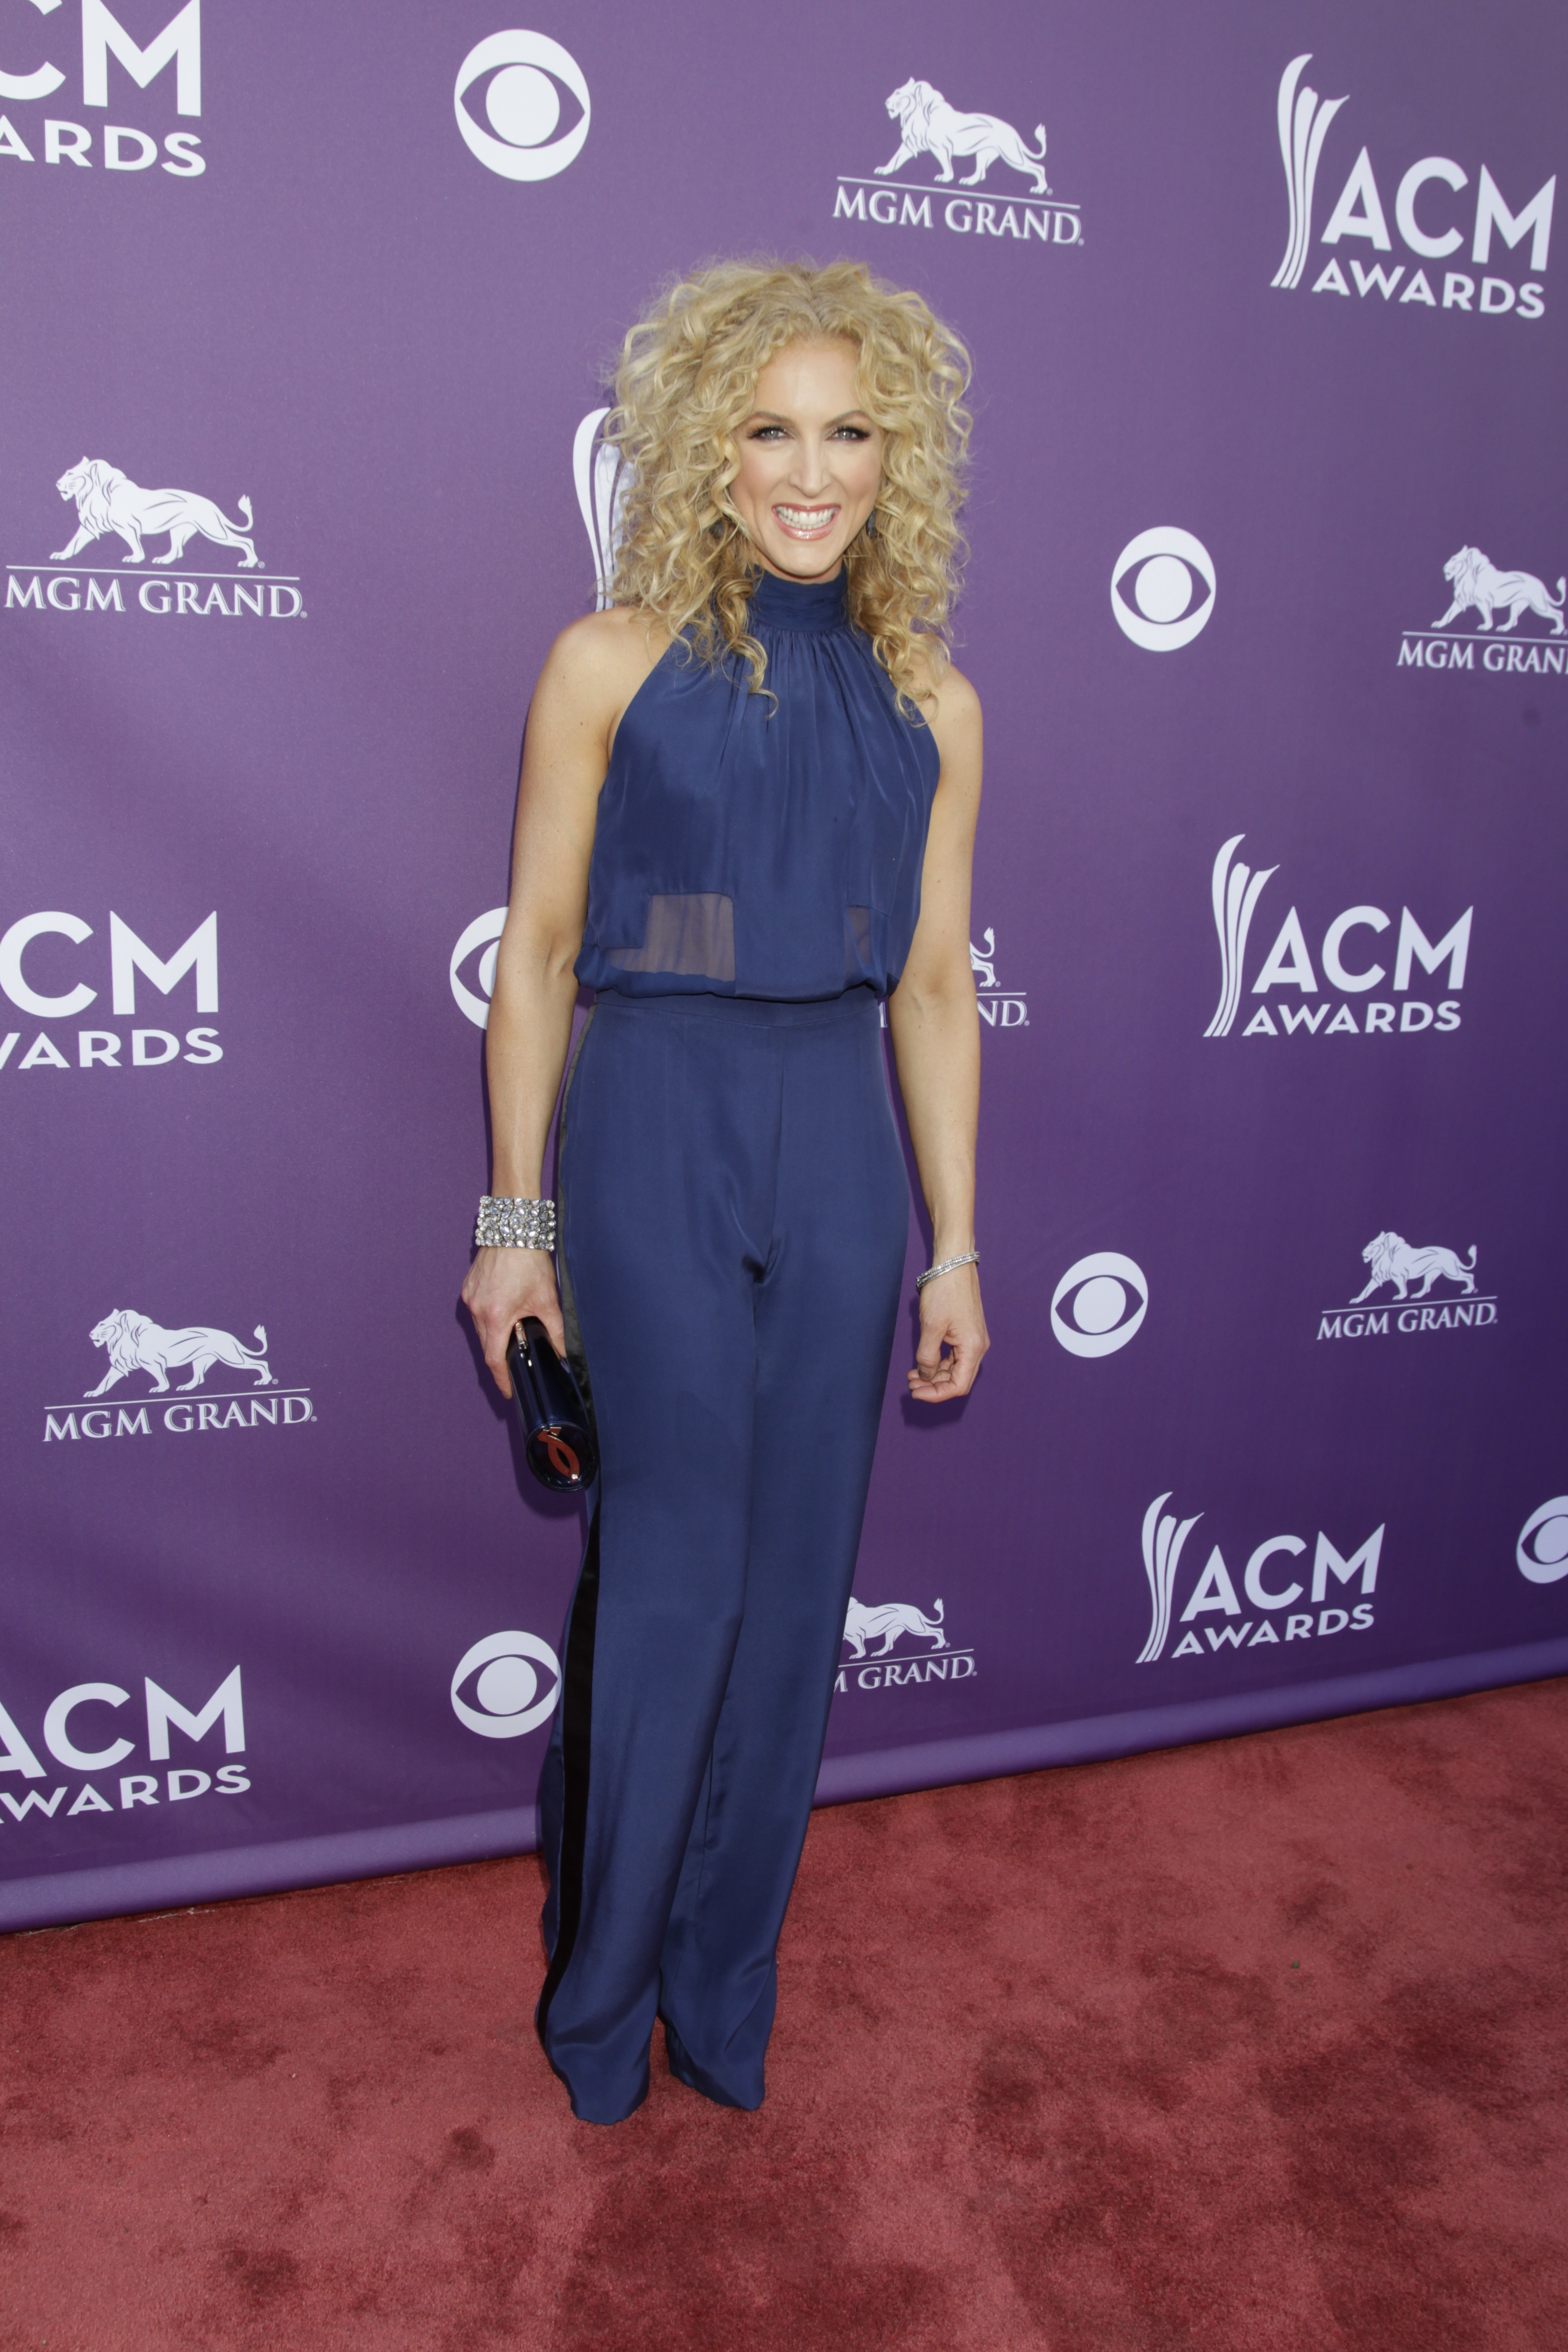 Kimberly Schlapman on the Red Carpet - 48th ACM Awards